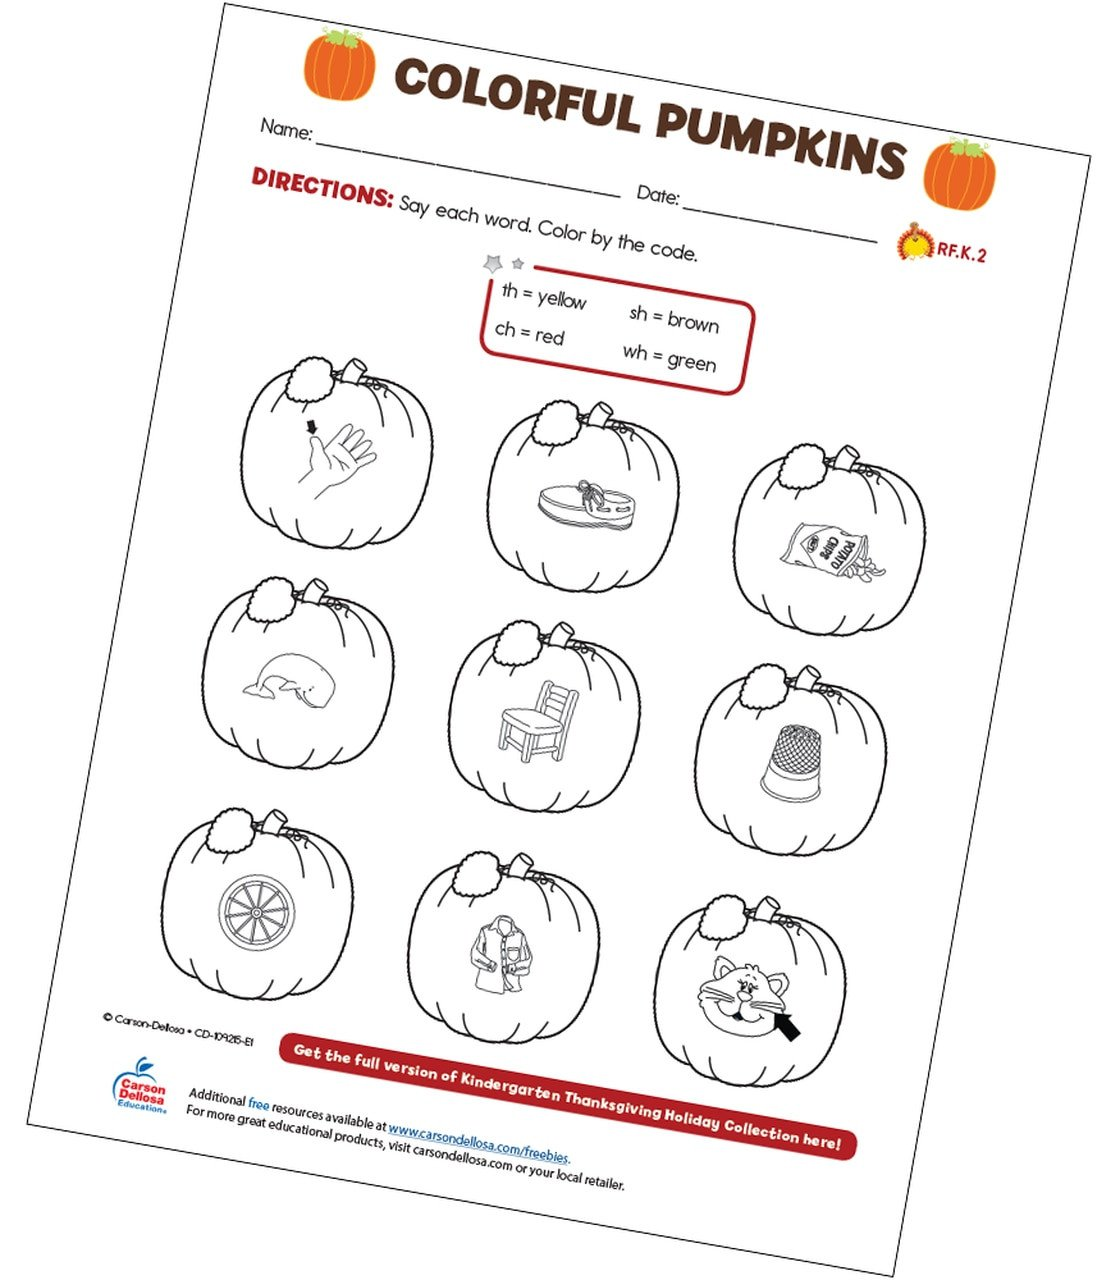 Pumpkin Worksheets for Kindergarten Colorful Pumpkins Free Printable